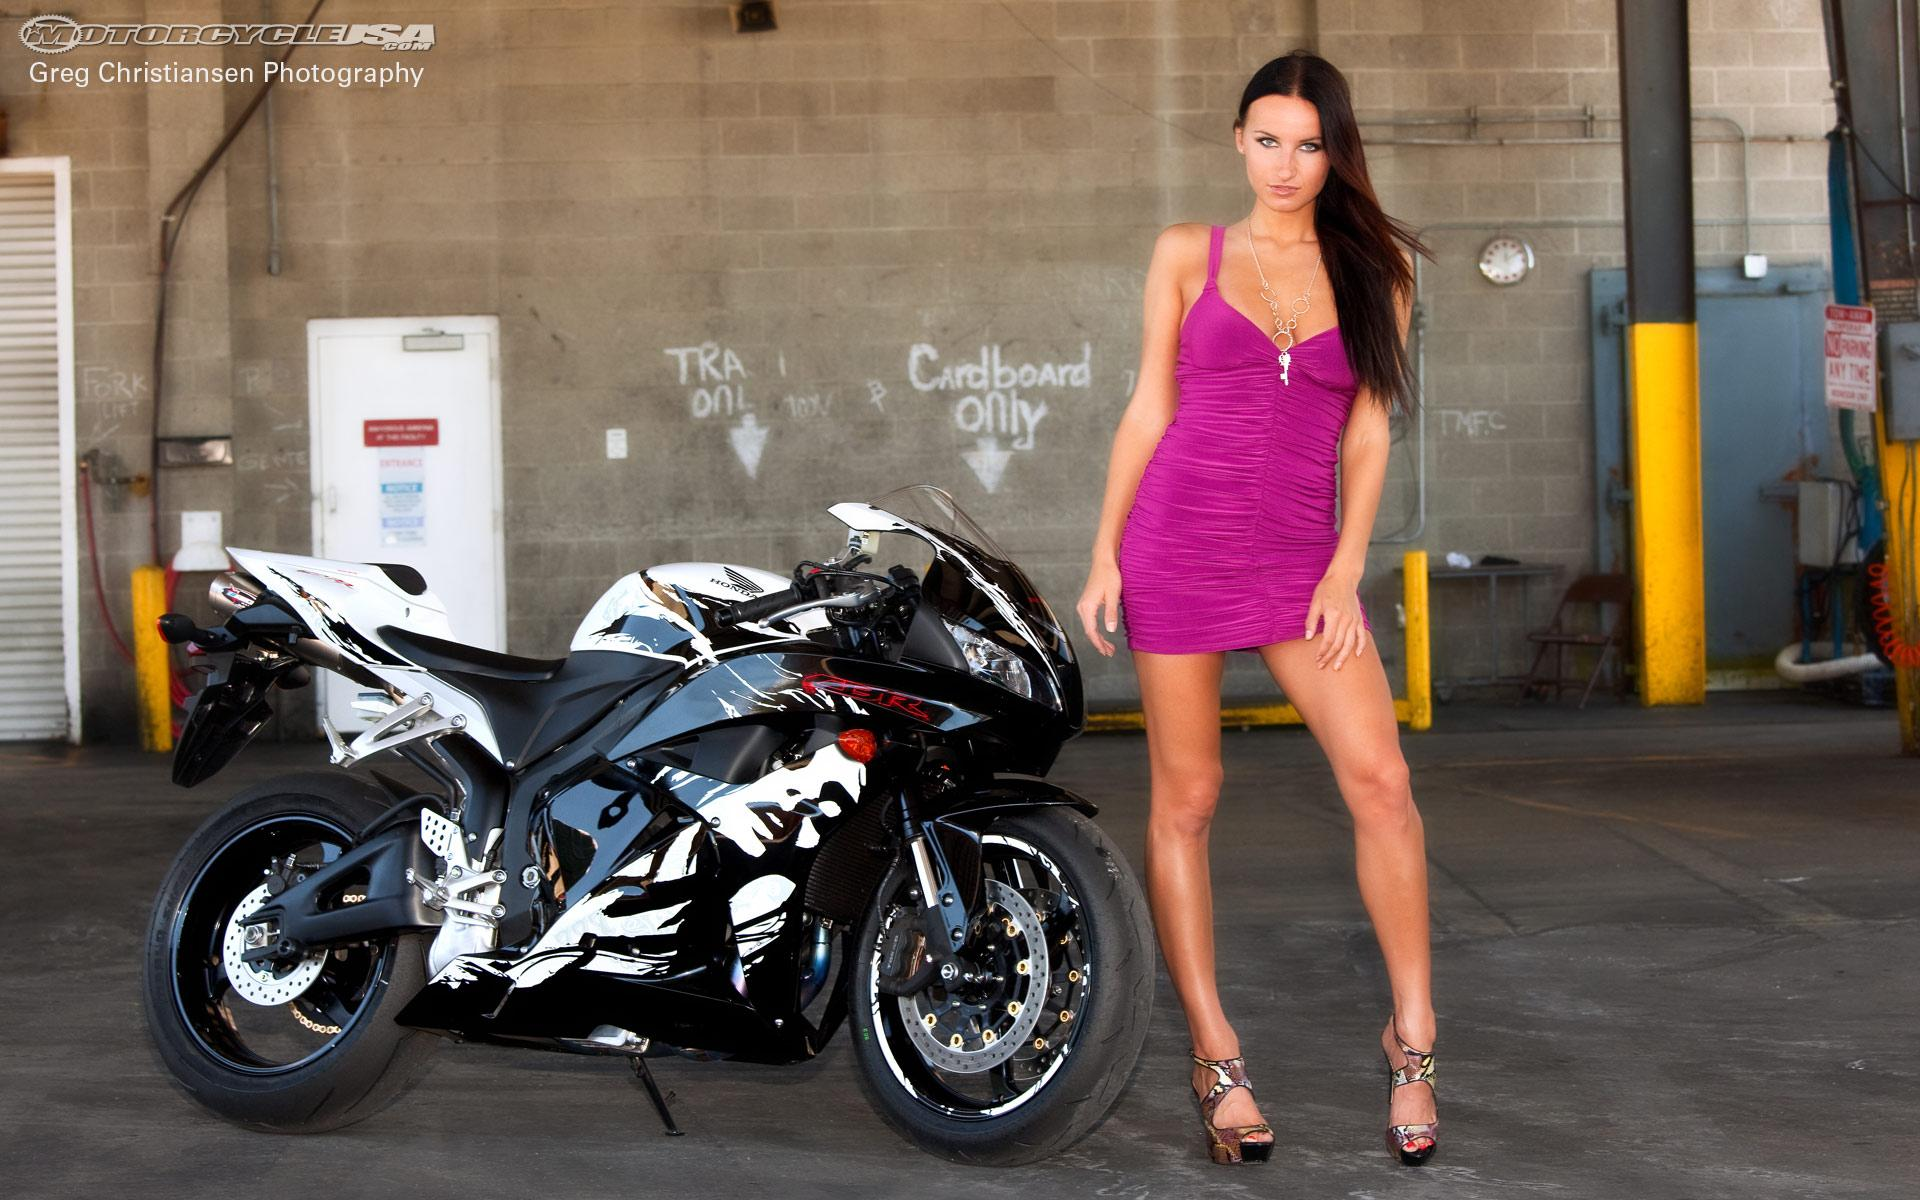 HOT BABE HONDA CBR 600RR   Motorcycles Wallpaper 31778226 1920x1200